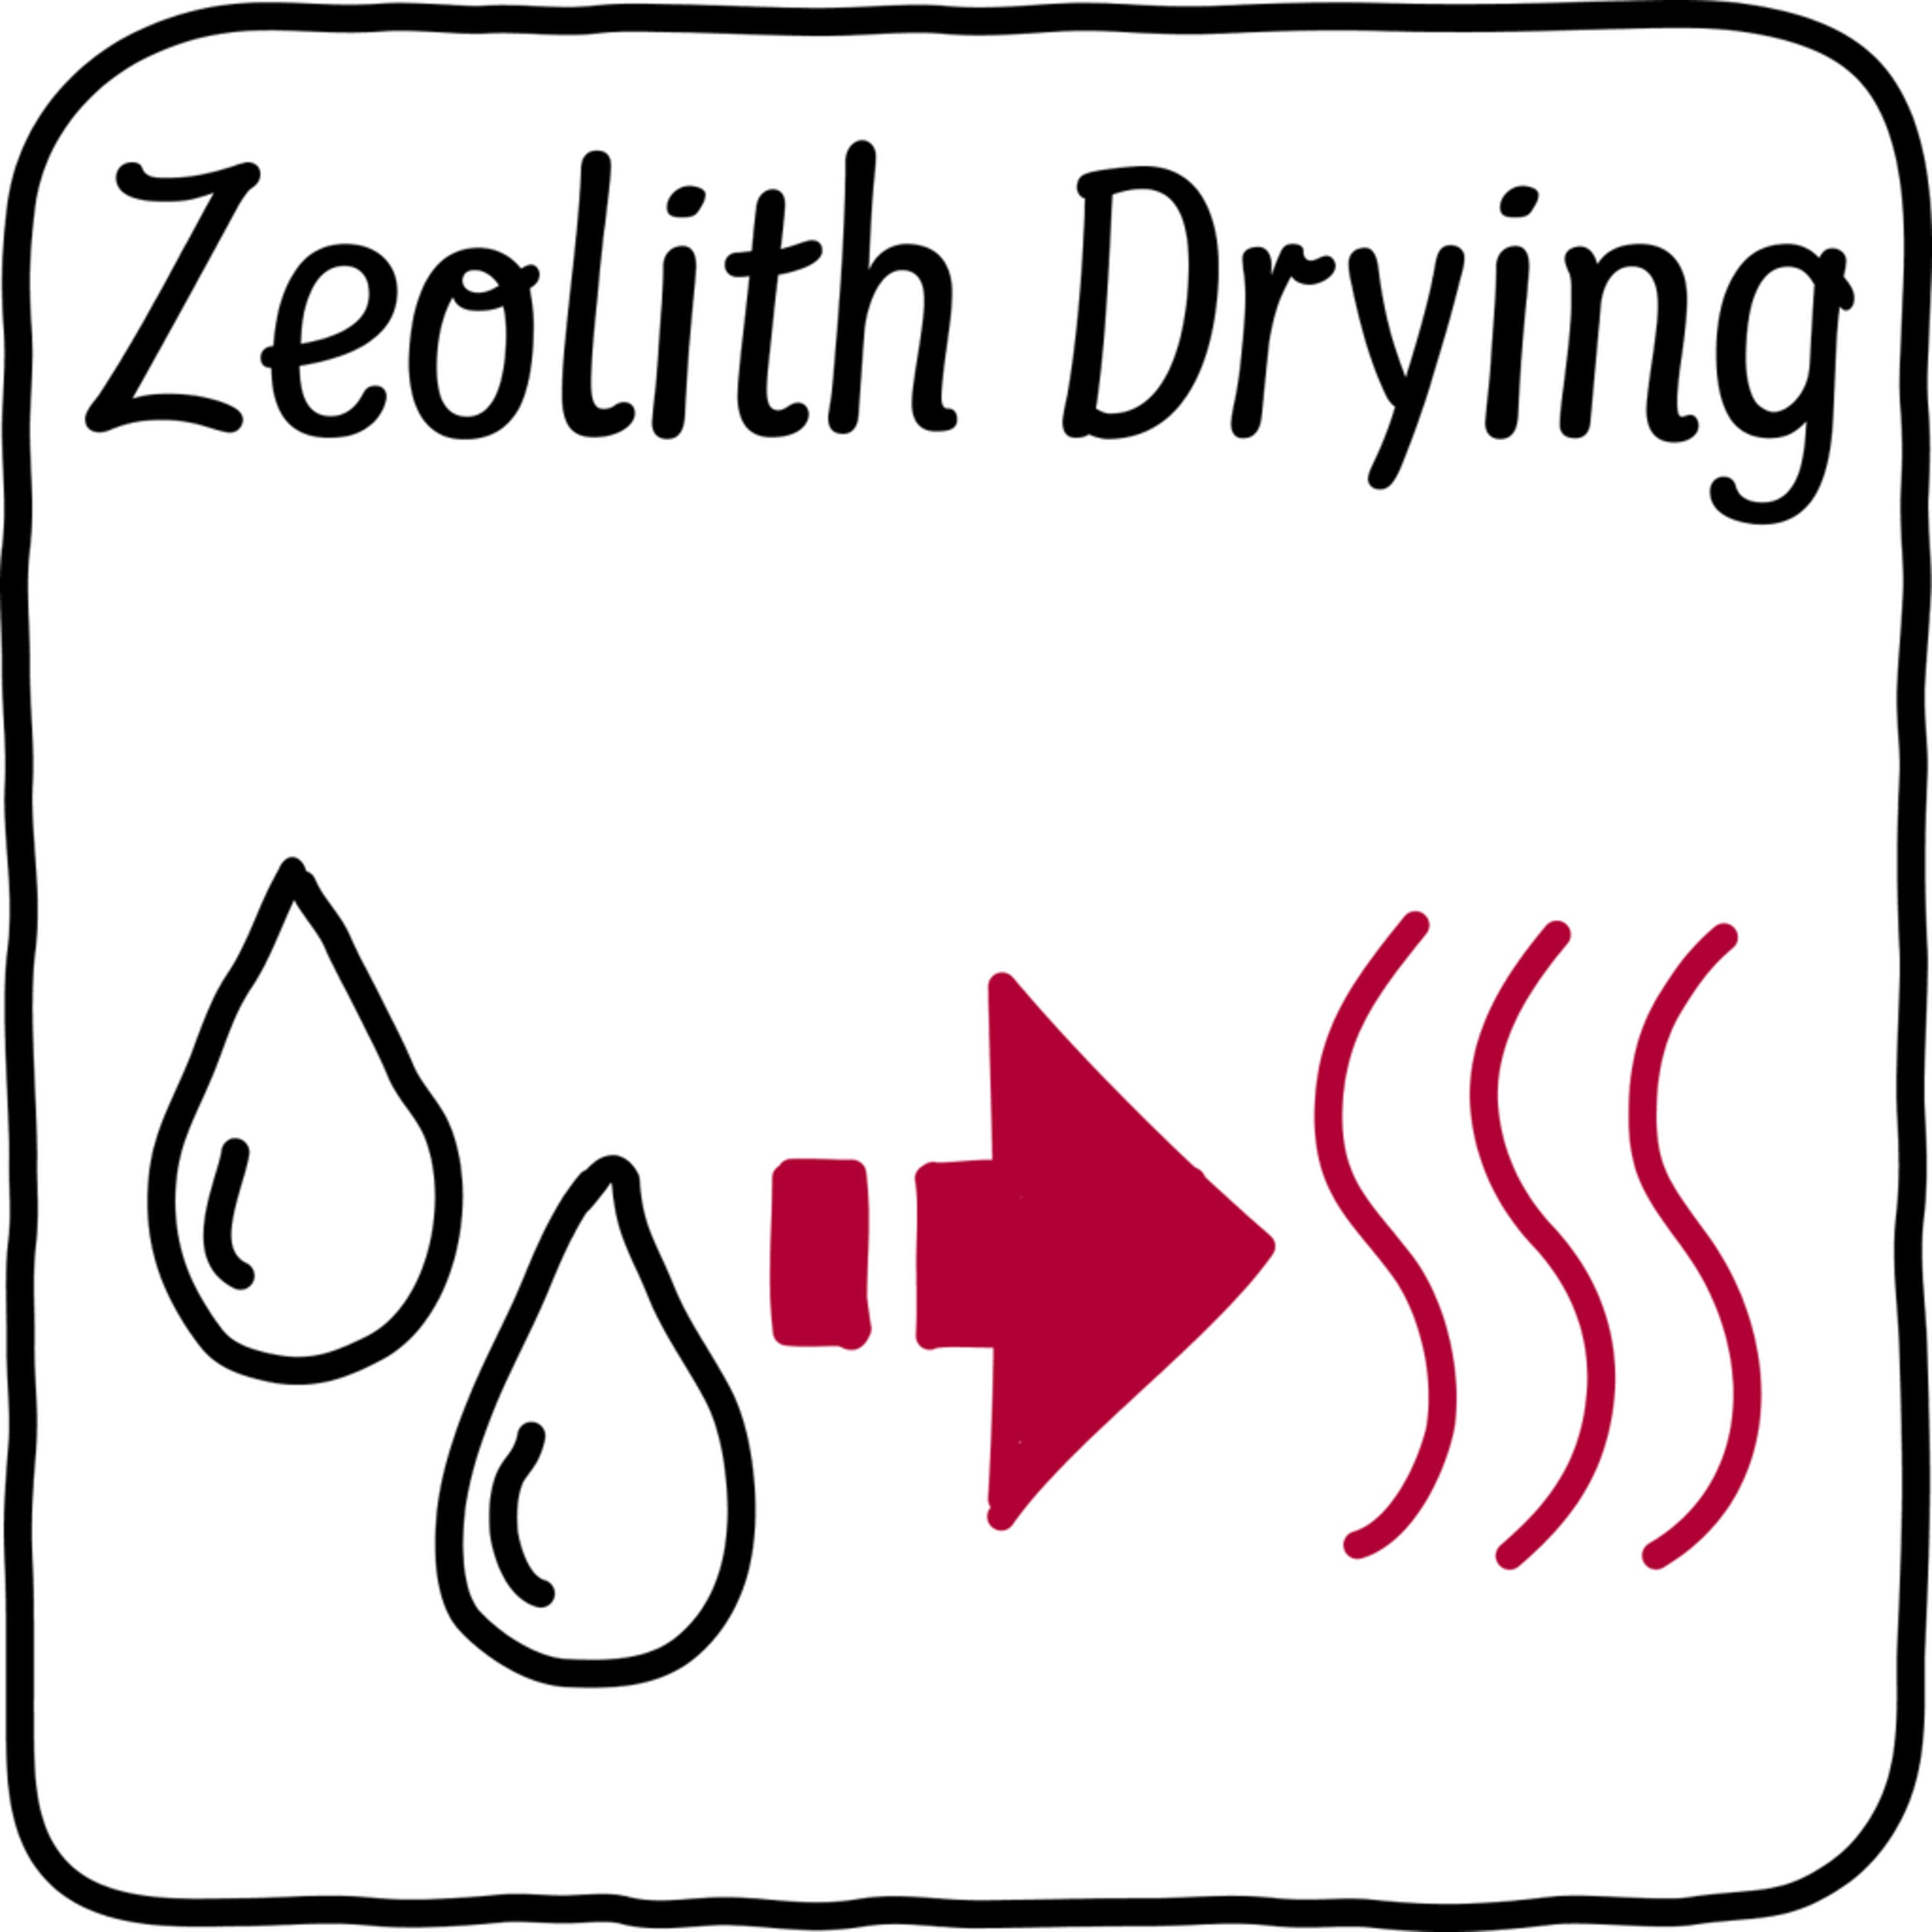 NEFF Zeolith Drying Label